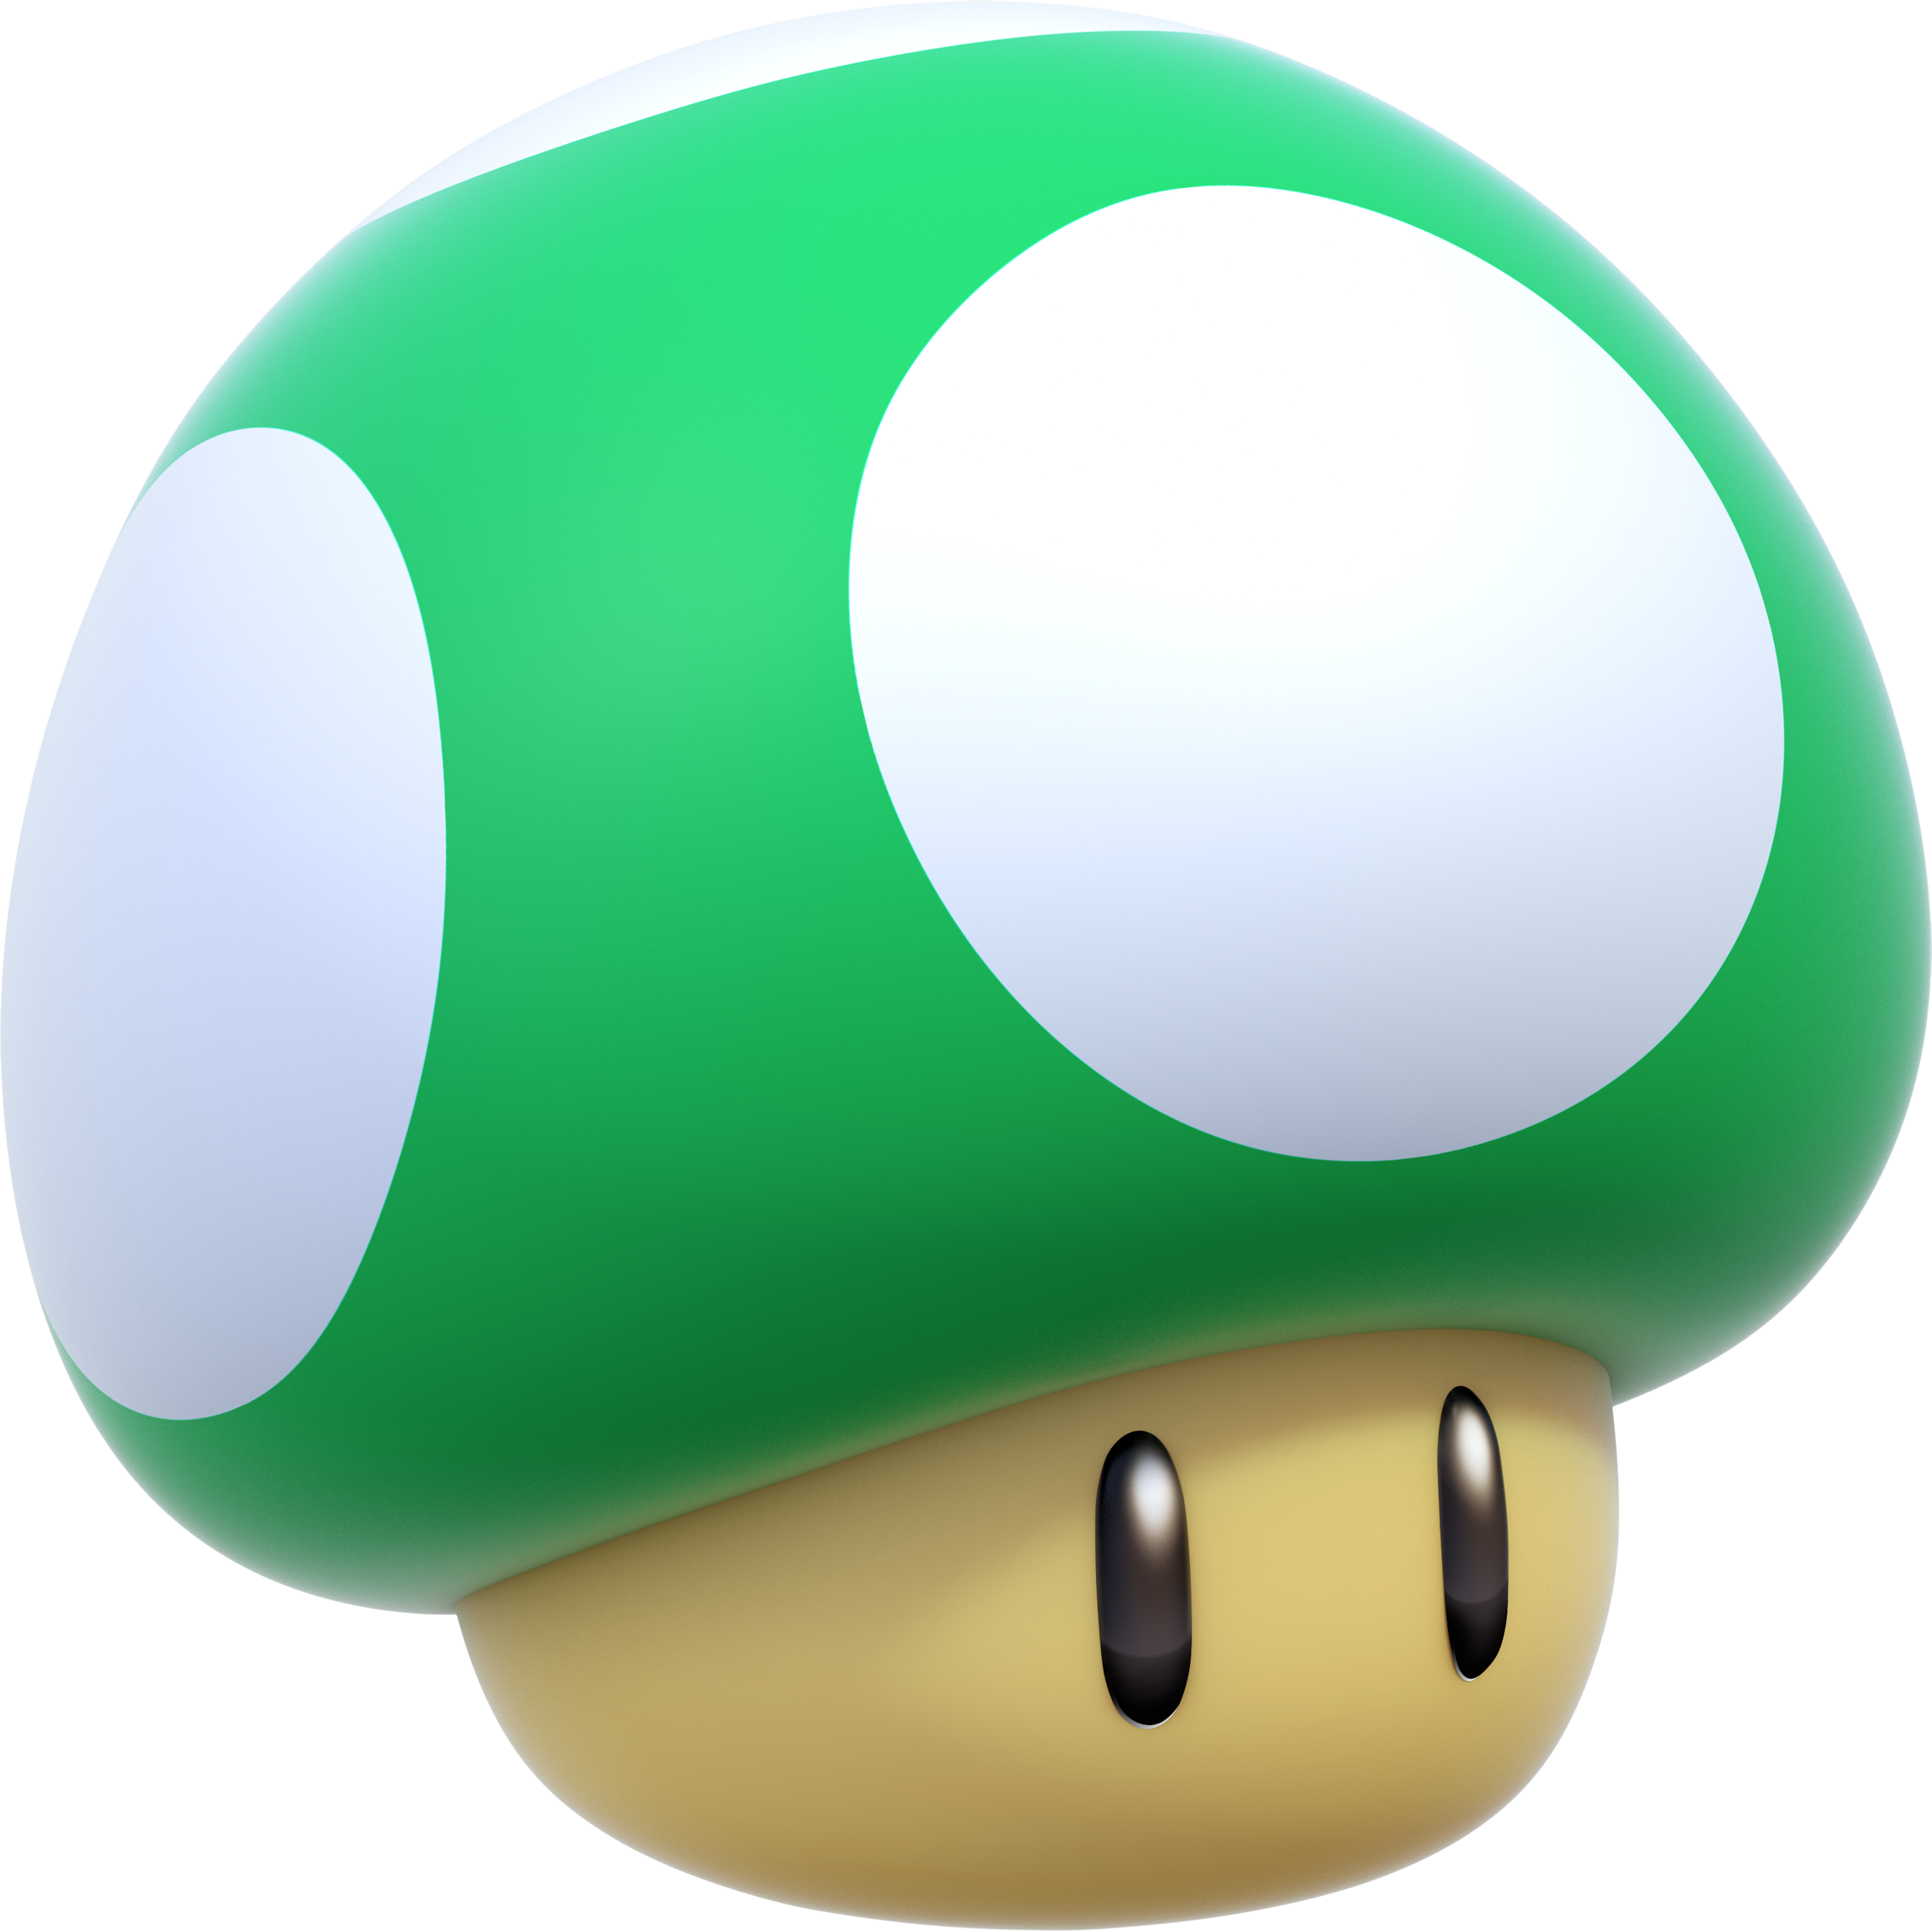 Mario 1 up png. Mushroom screenshots images